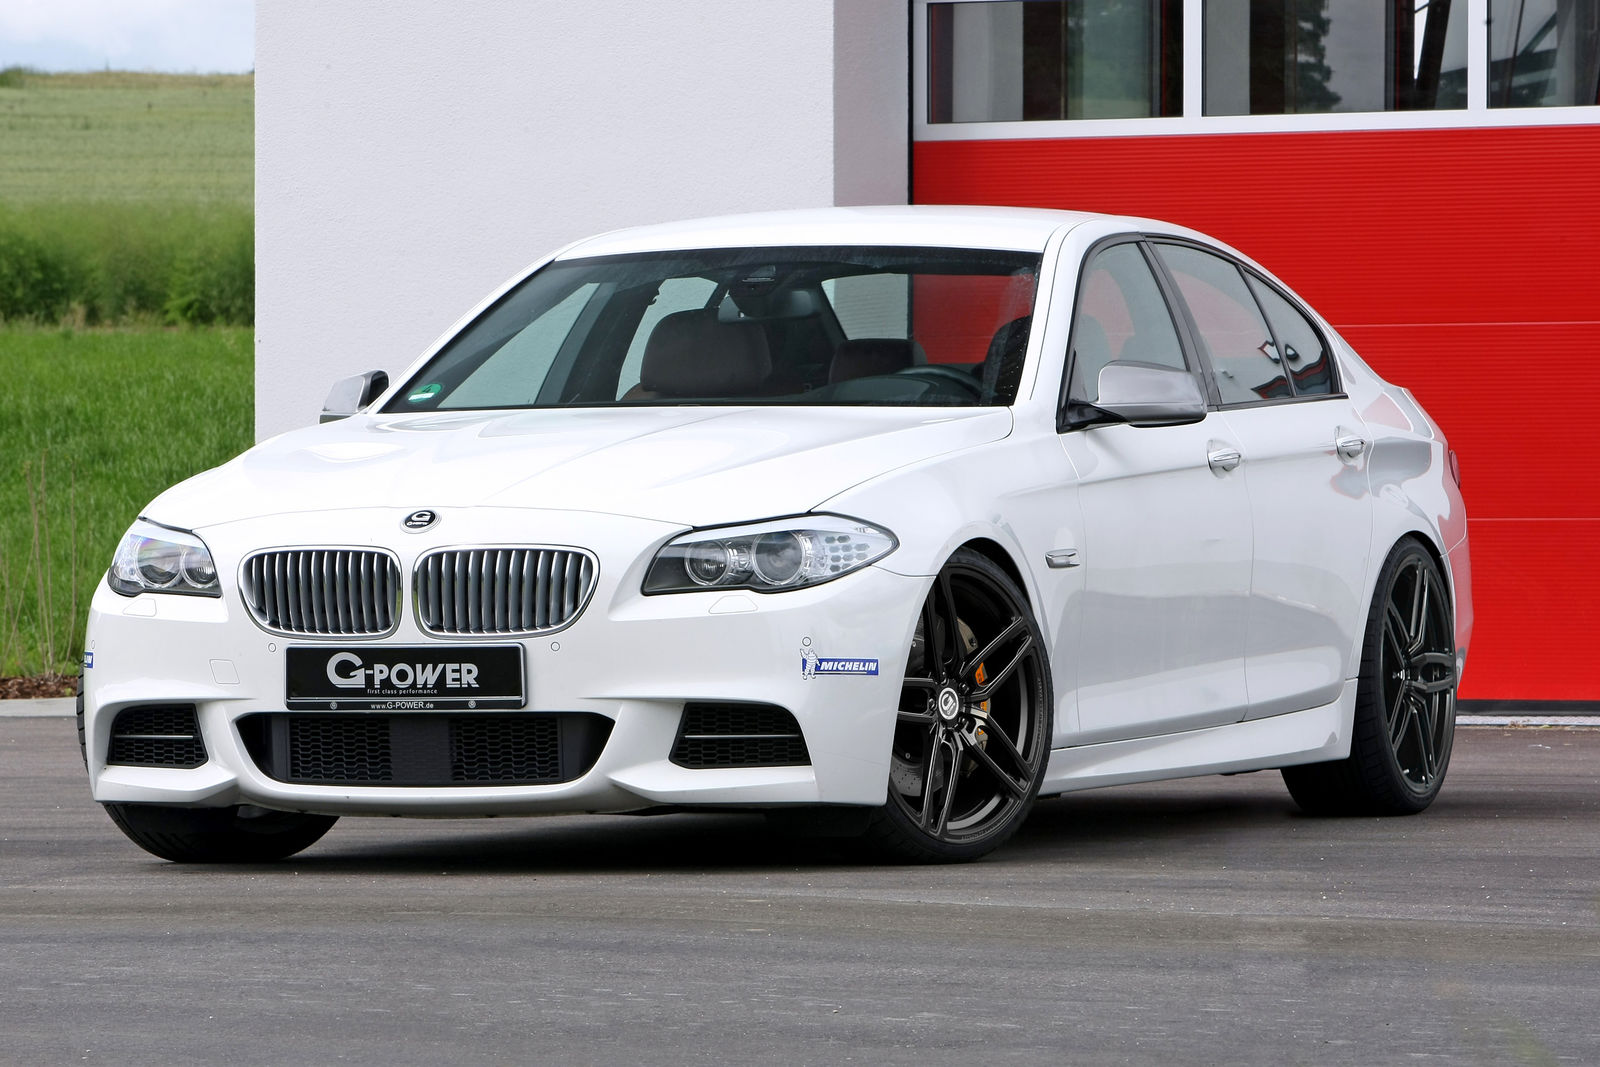 G Power Bmw M550d Xdrive Has 435 Hp And 850 Nm Of Torque